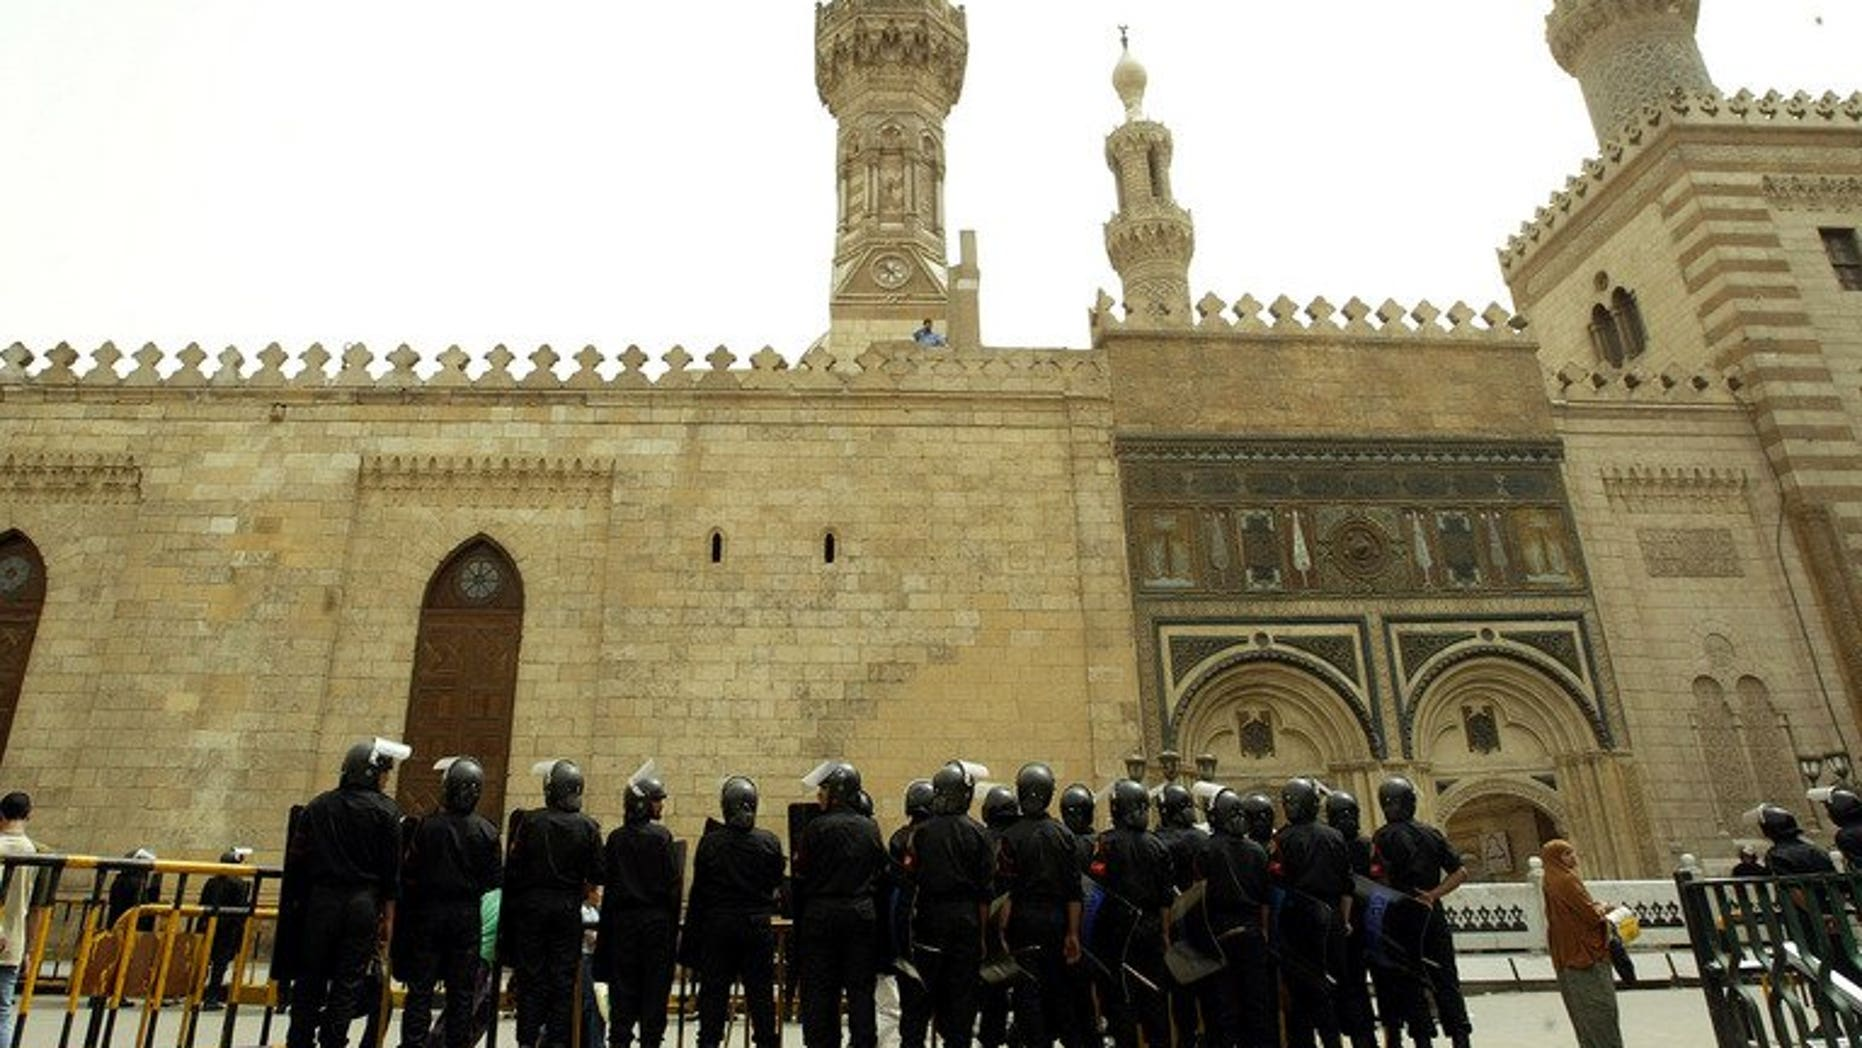 Egyptian riot police guard the entrance of al-Azhar mosque in Cairo, on April 4, 2003. Al-Azhar -- Sunni Islam's main seat of learning -- has distanced itself from the crackdown on protesters loyal to ousted president Mohamed Morsi which left dozens dead.